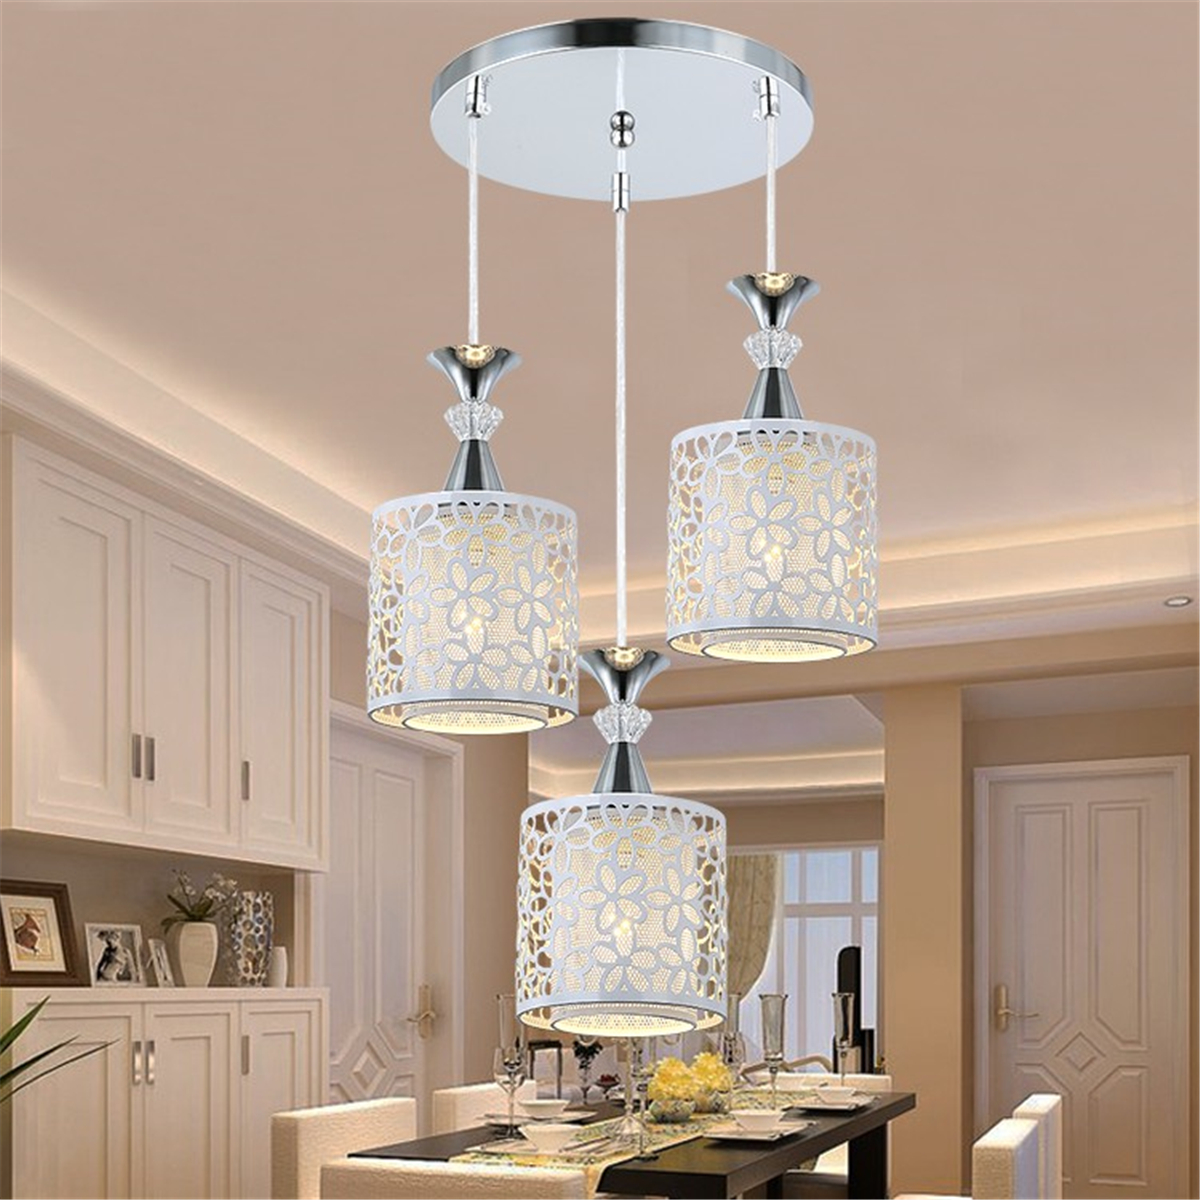 Lamparas Para Comedores Modern Flower Petal Ceiling Light Led Pendant Lamp Dining